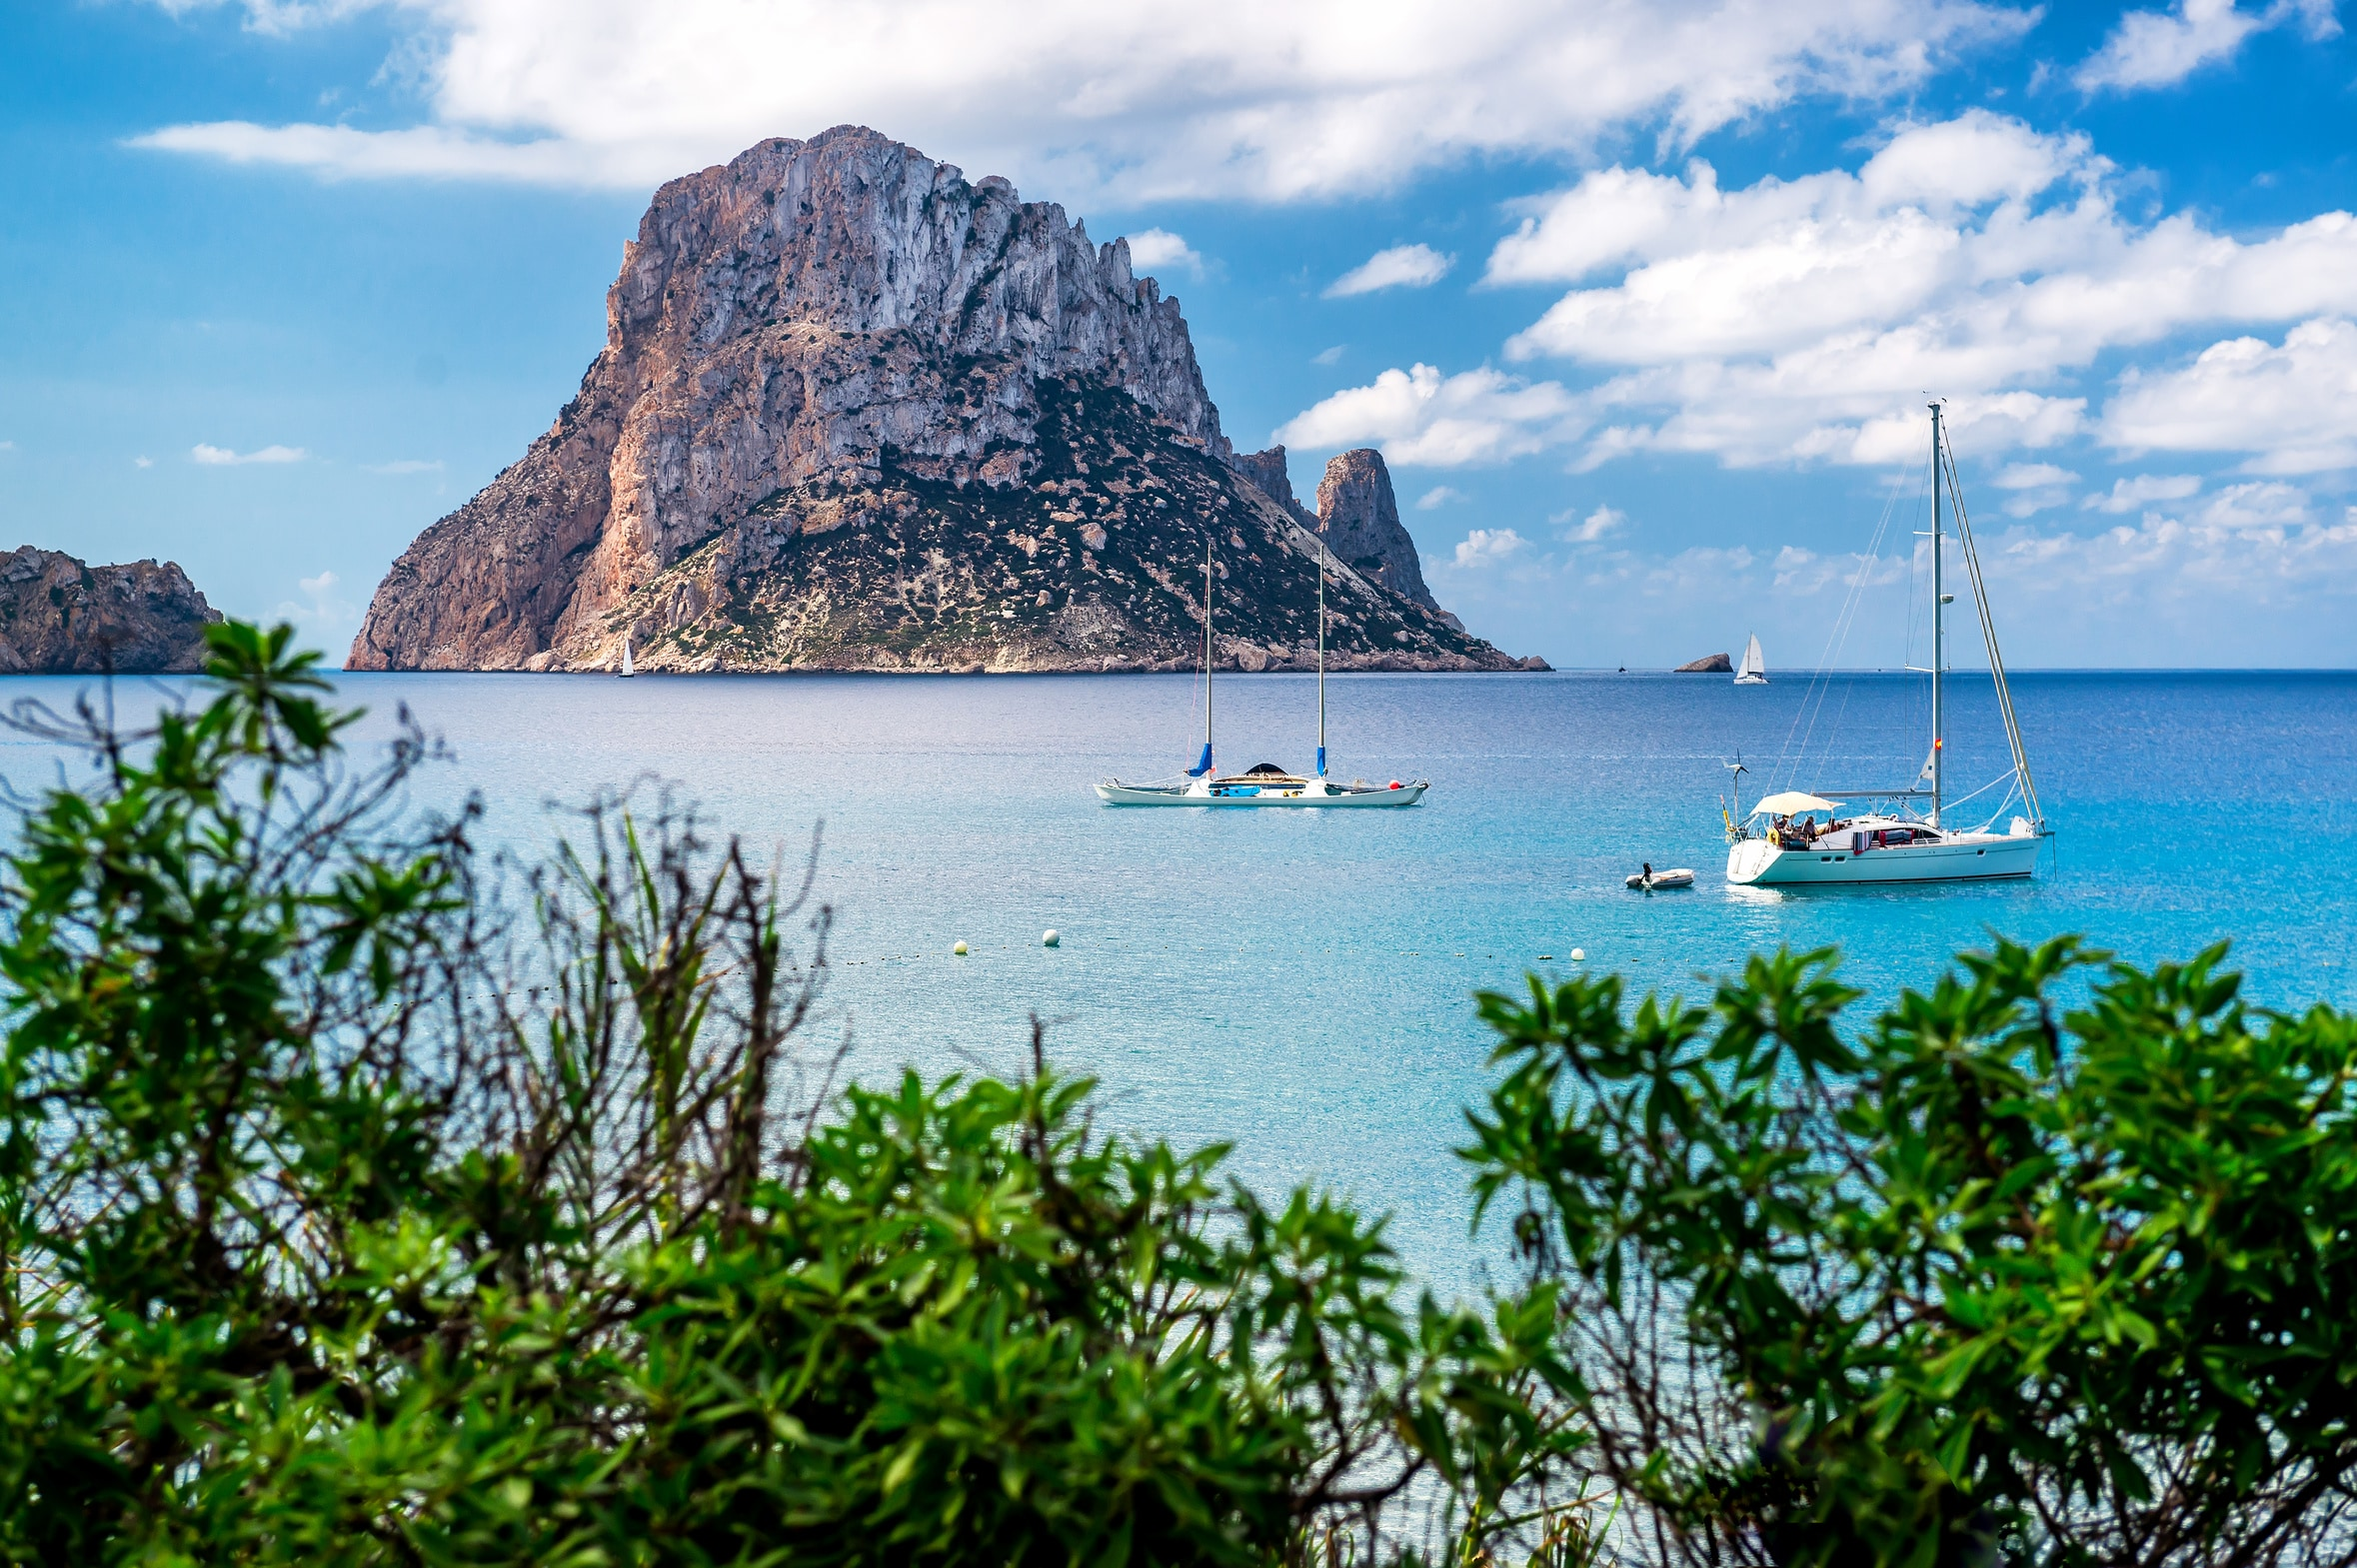 Ibiza without the crowds  how to explore the island by boat Ibiza is bursting at the seams this summer   but there is a simple way to